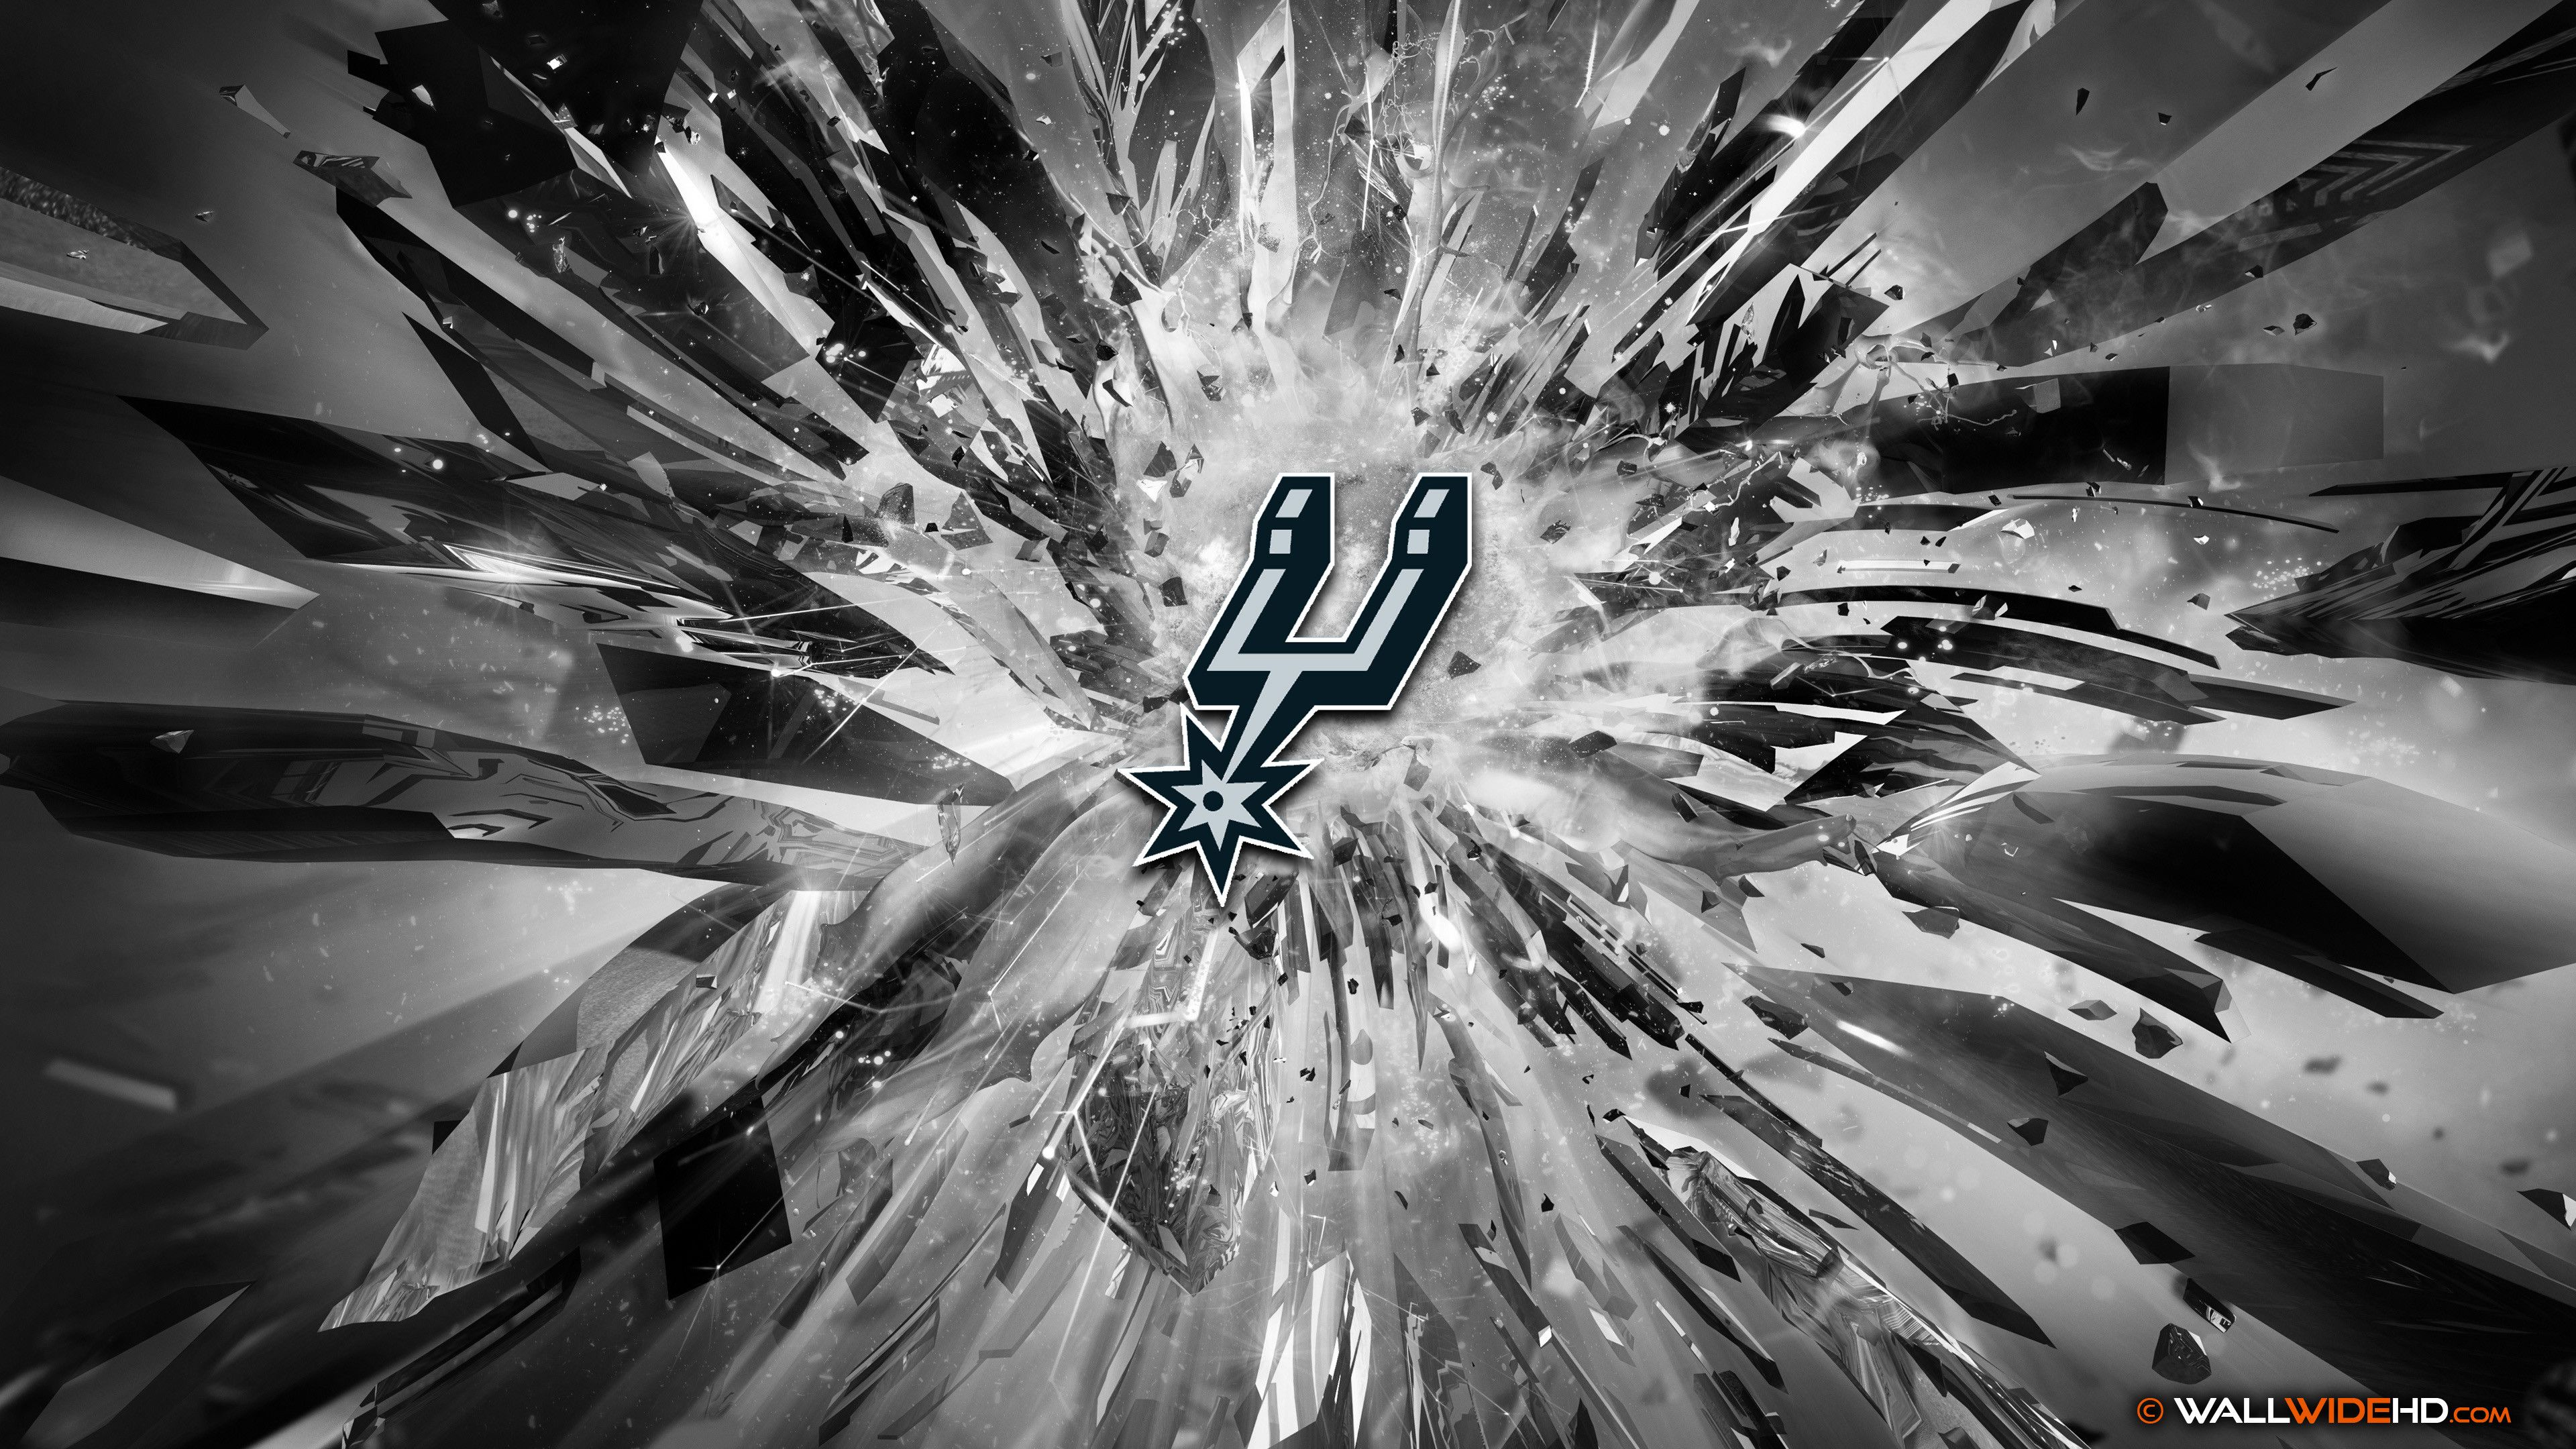 3840x2160 - San Antonio Spurs Wallpapers 9